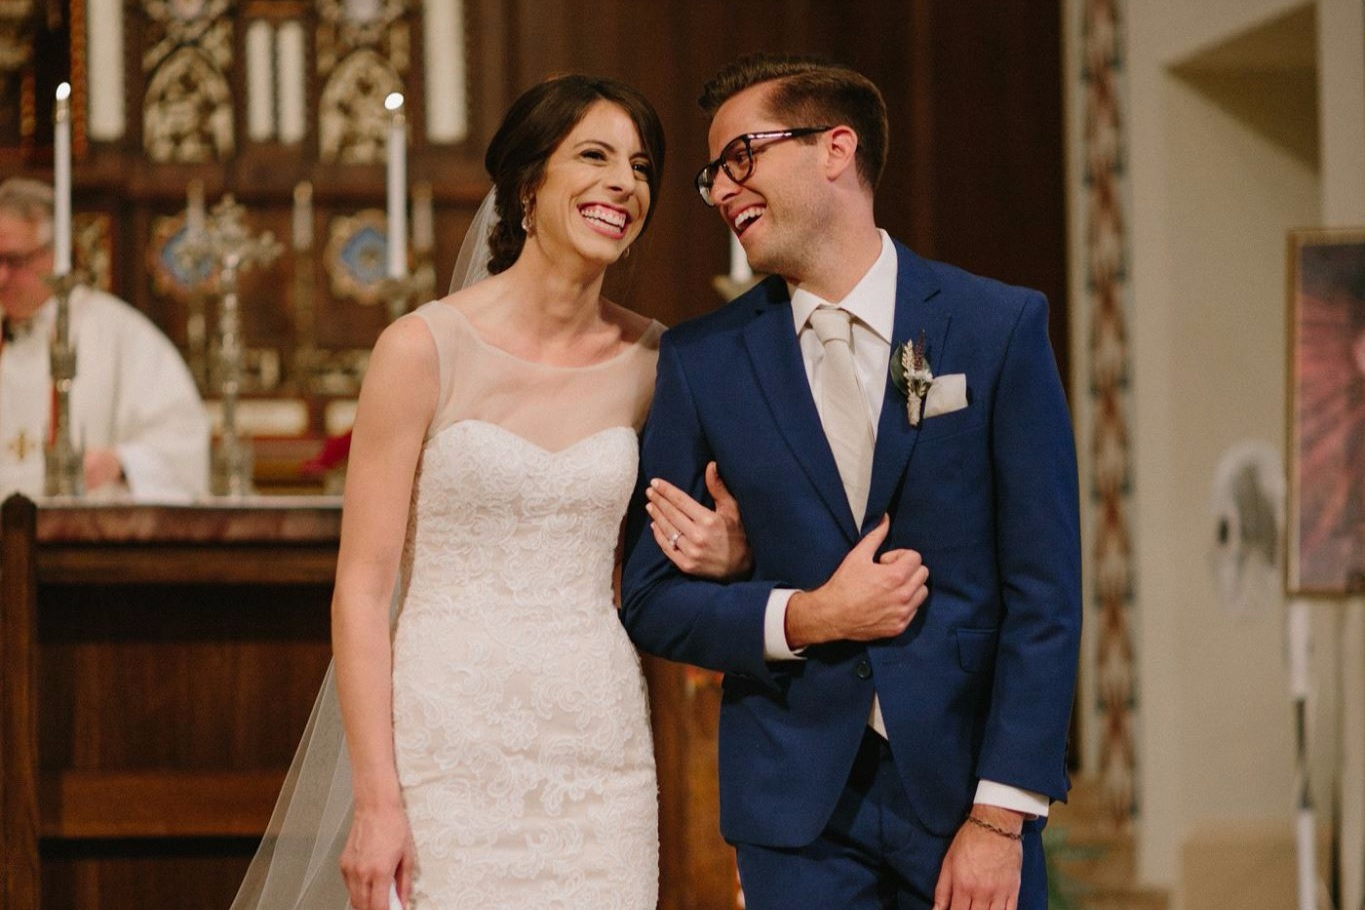 Weddings - Are you interested in getting married at St. Thomas Aquinas? Learn about requirements and get your questions answered here.